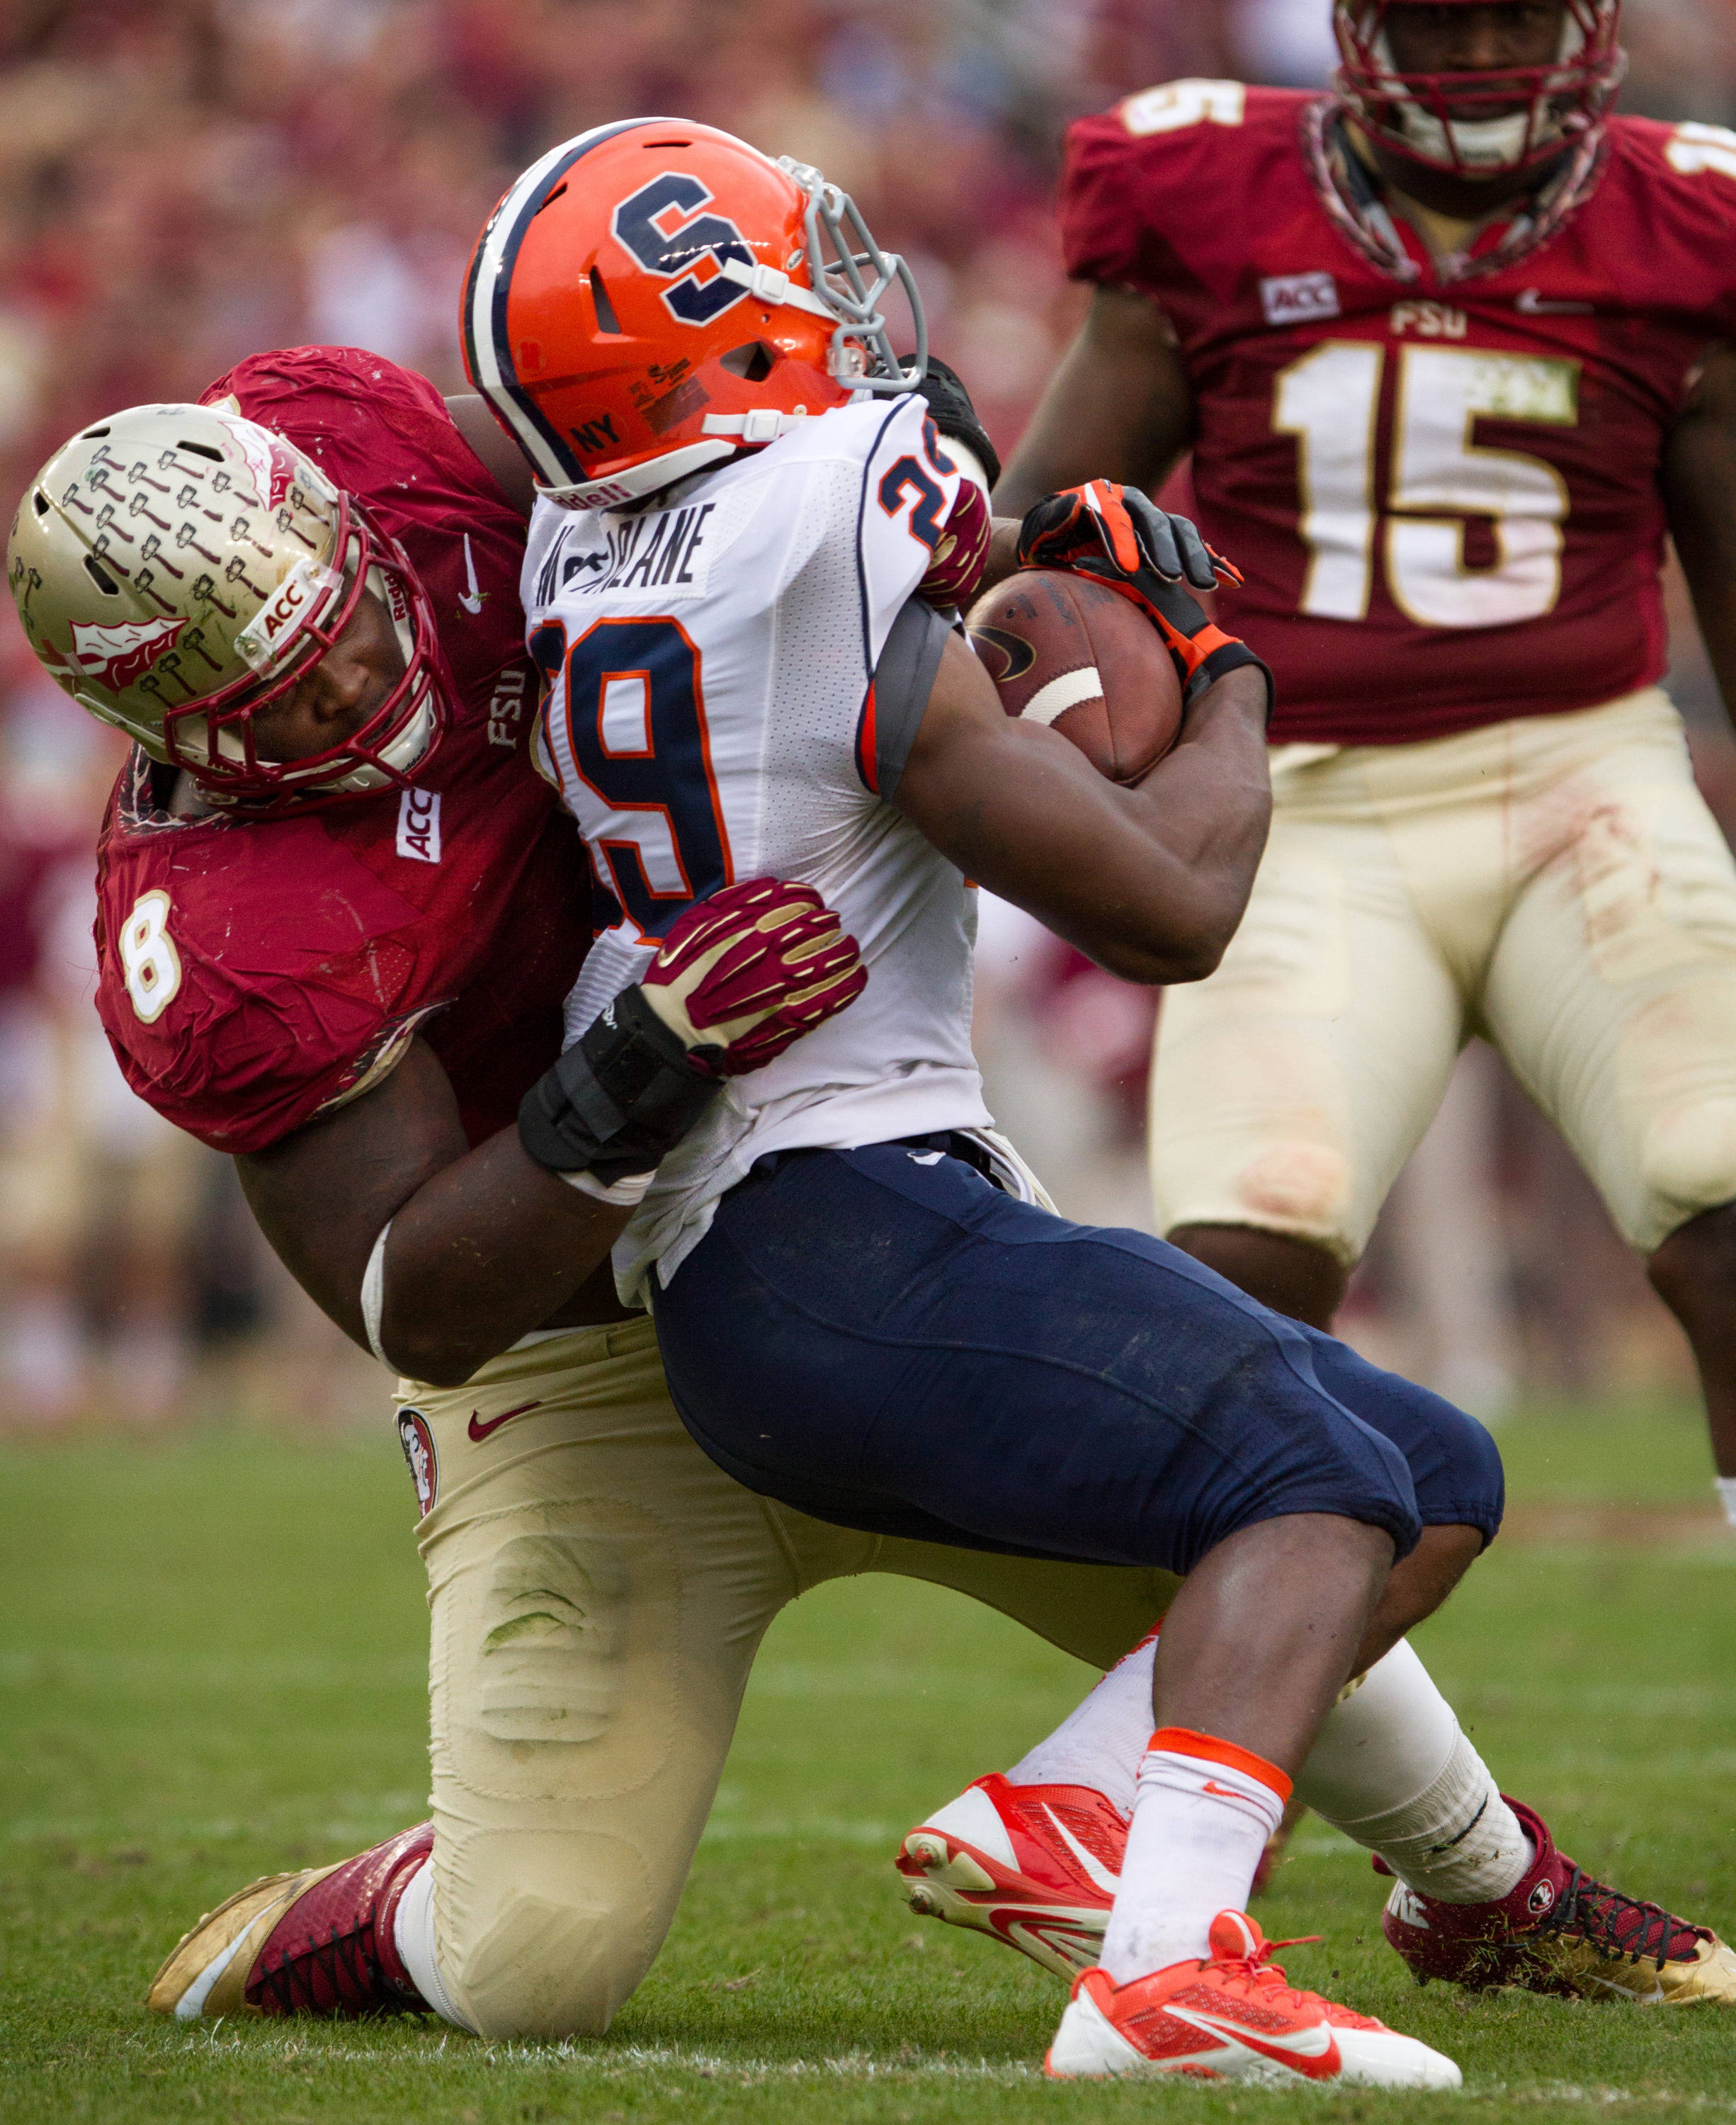 Timmy Jernigan (8) tackles a Syracuse ball carrier during FSU Football's 59-3 win over Syracuse on Saturday, November 16, 2013 in Tallahassee, Fla. Photo by Mike Schwarz.